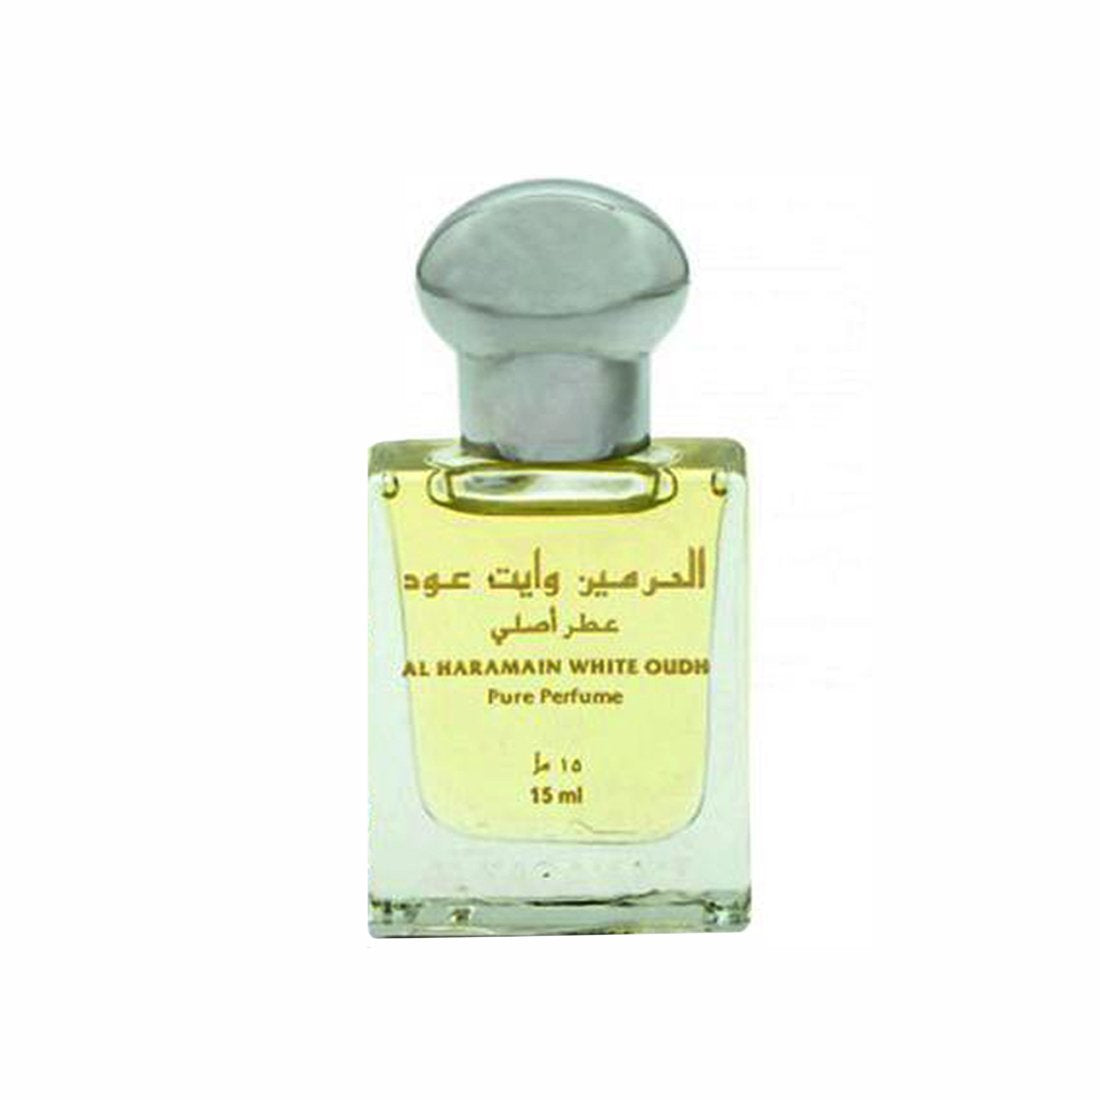 Al Haramain White Oudh Attar - 15 ml